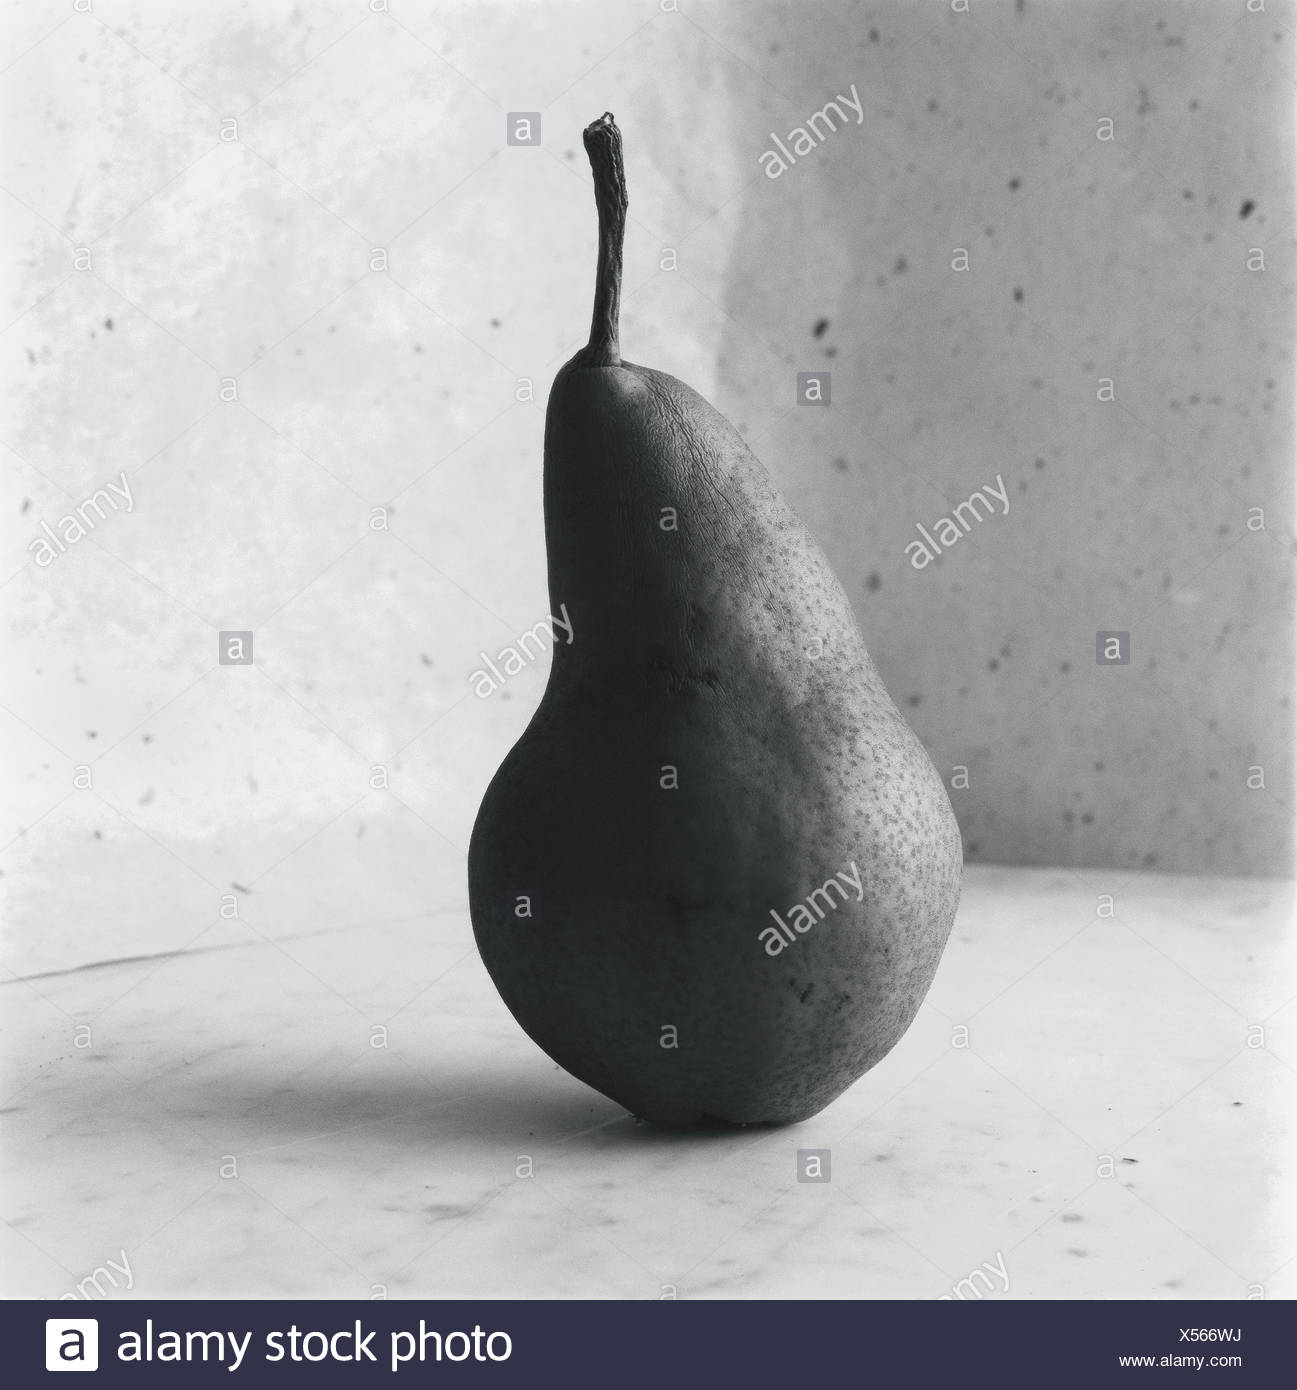 A pear. - Stock Image